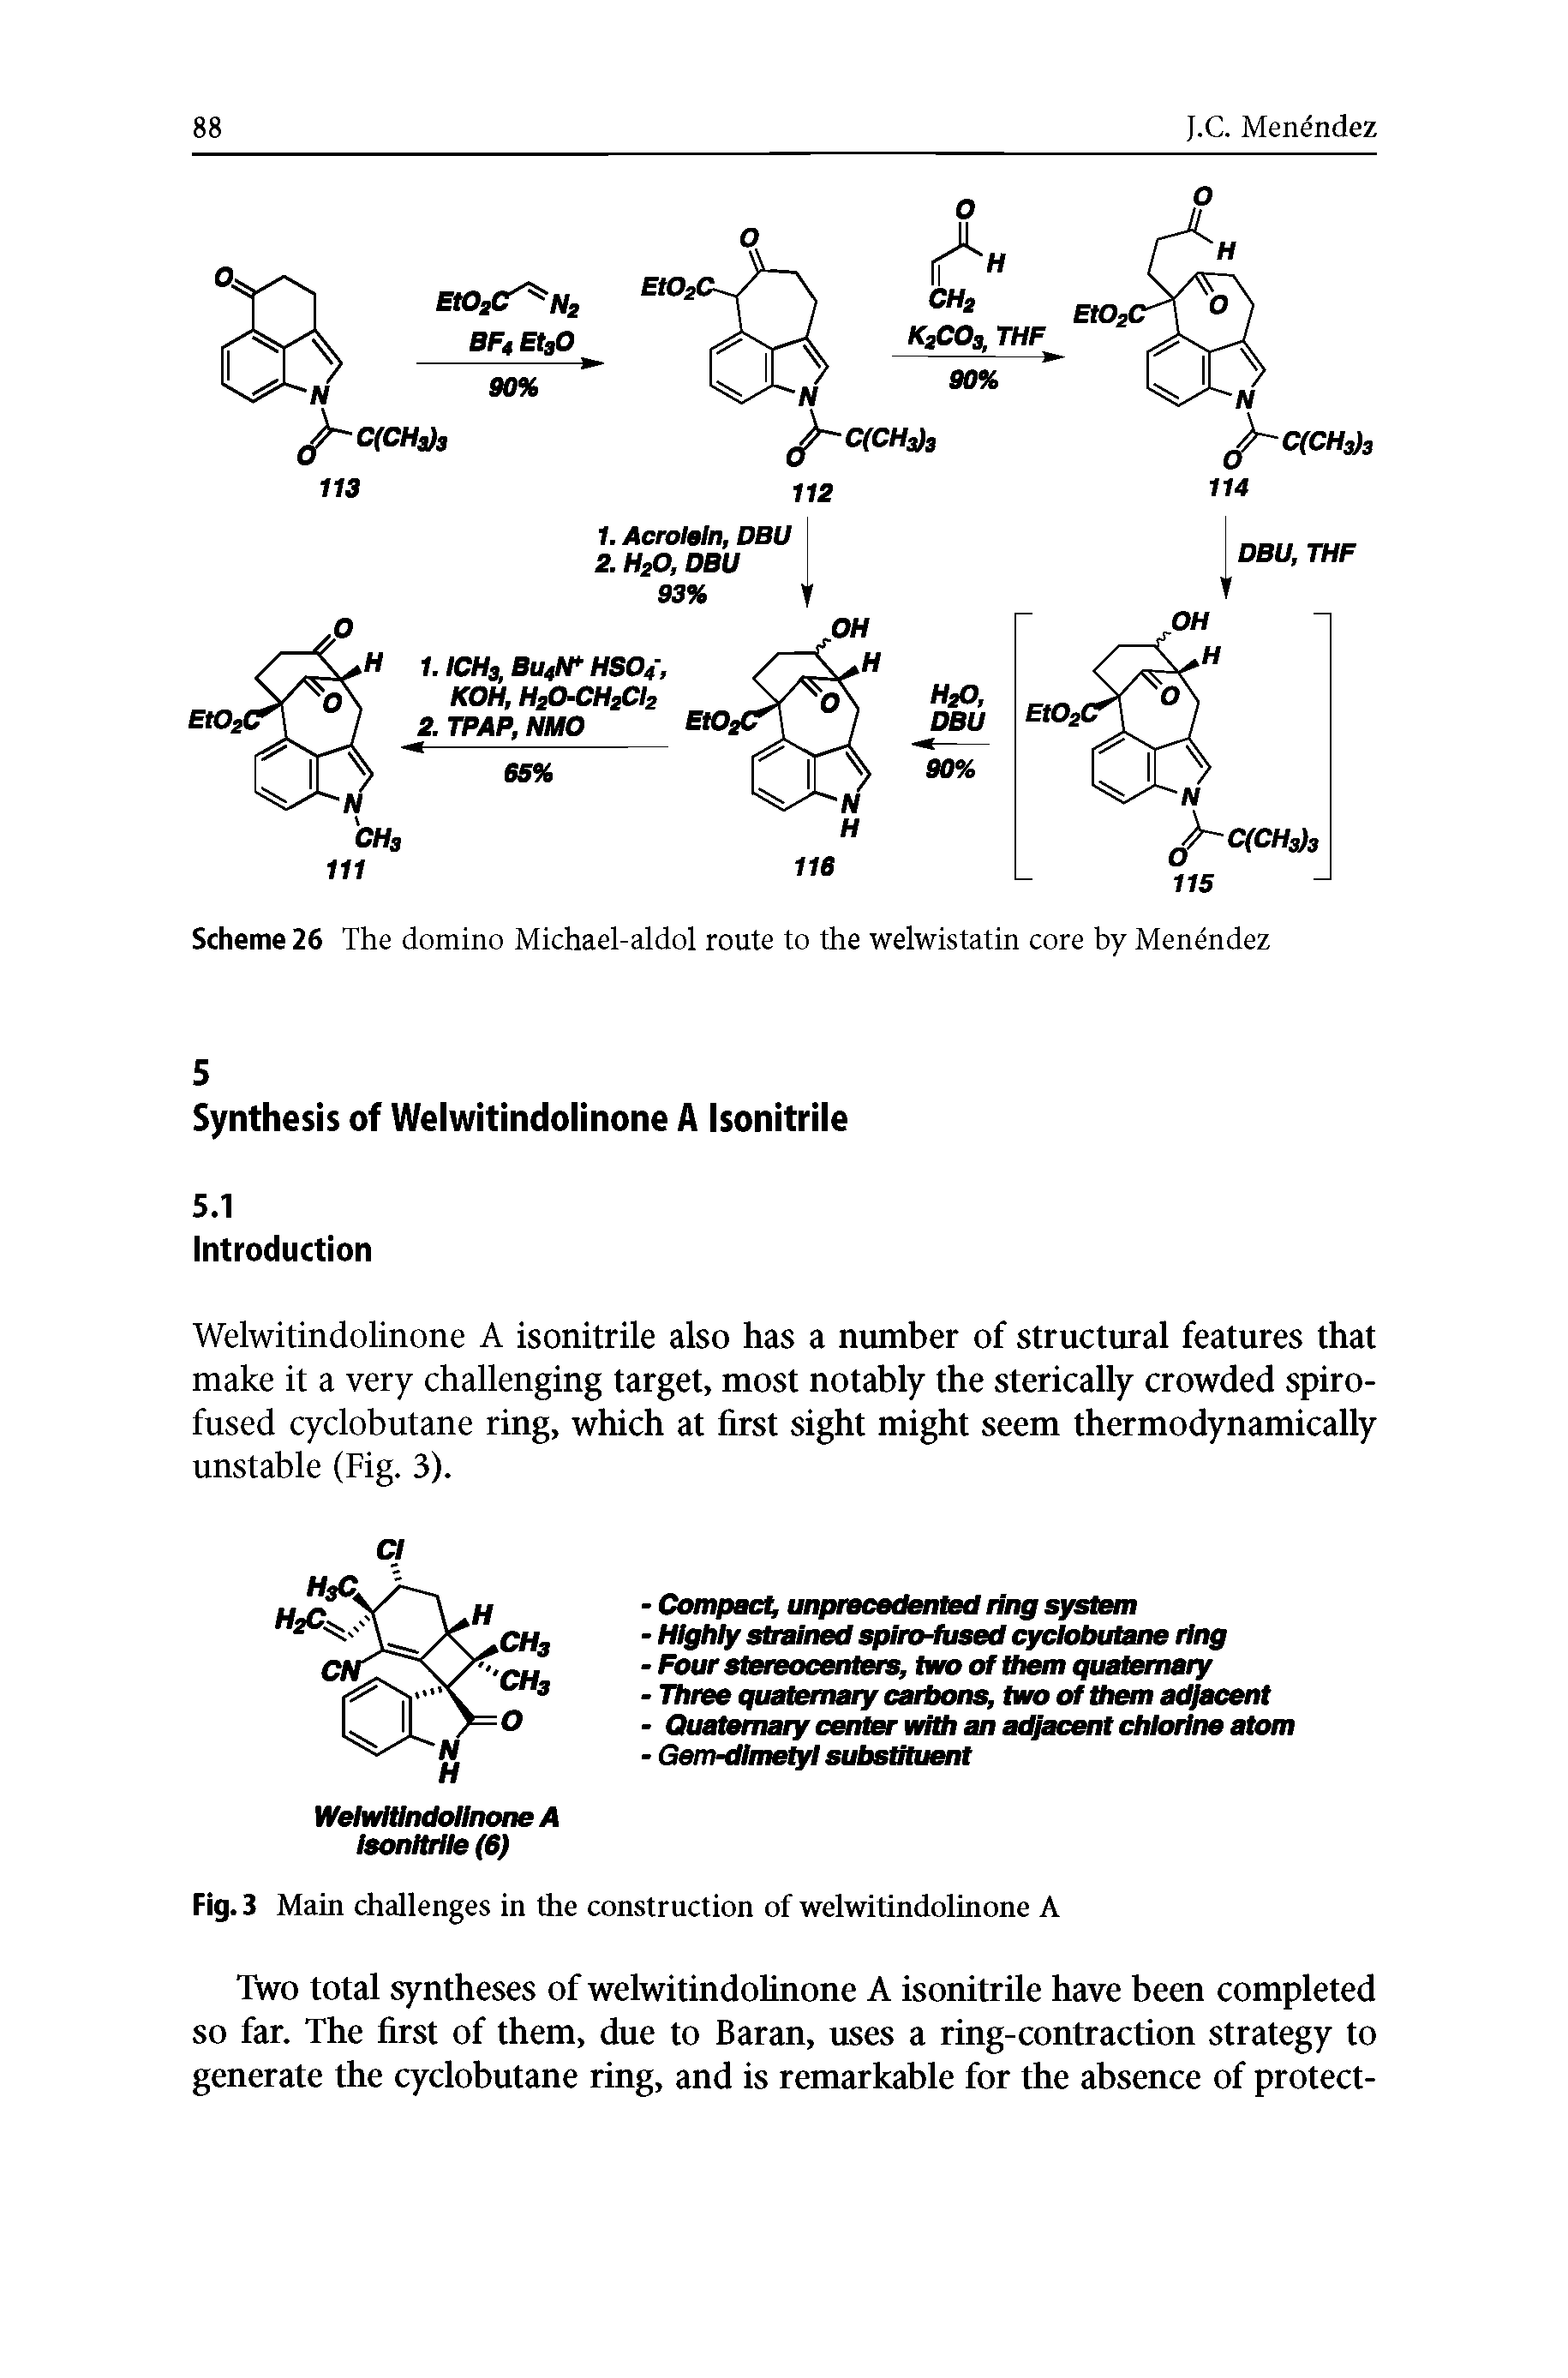 Scheme 26 The domino Michael-aldol route to the welwistatin core by Menendez